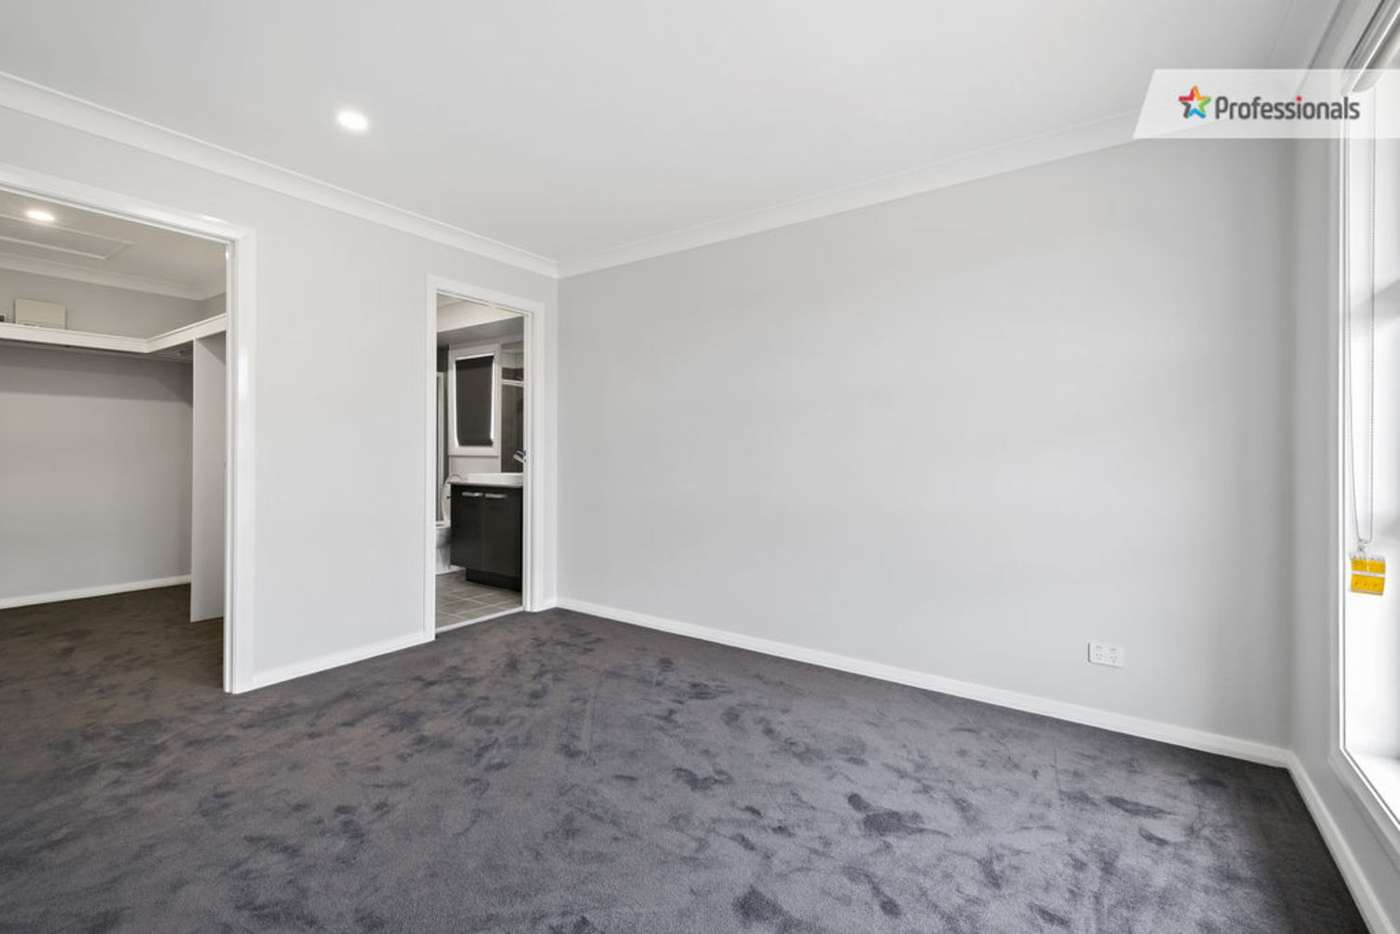 Fifth view of Homely house listing, 33 Thorpe Way, Box Hill NSW 2765